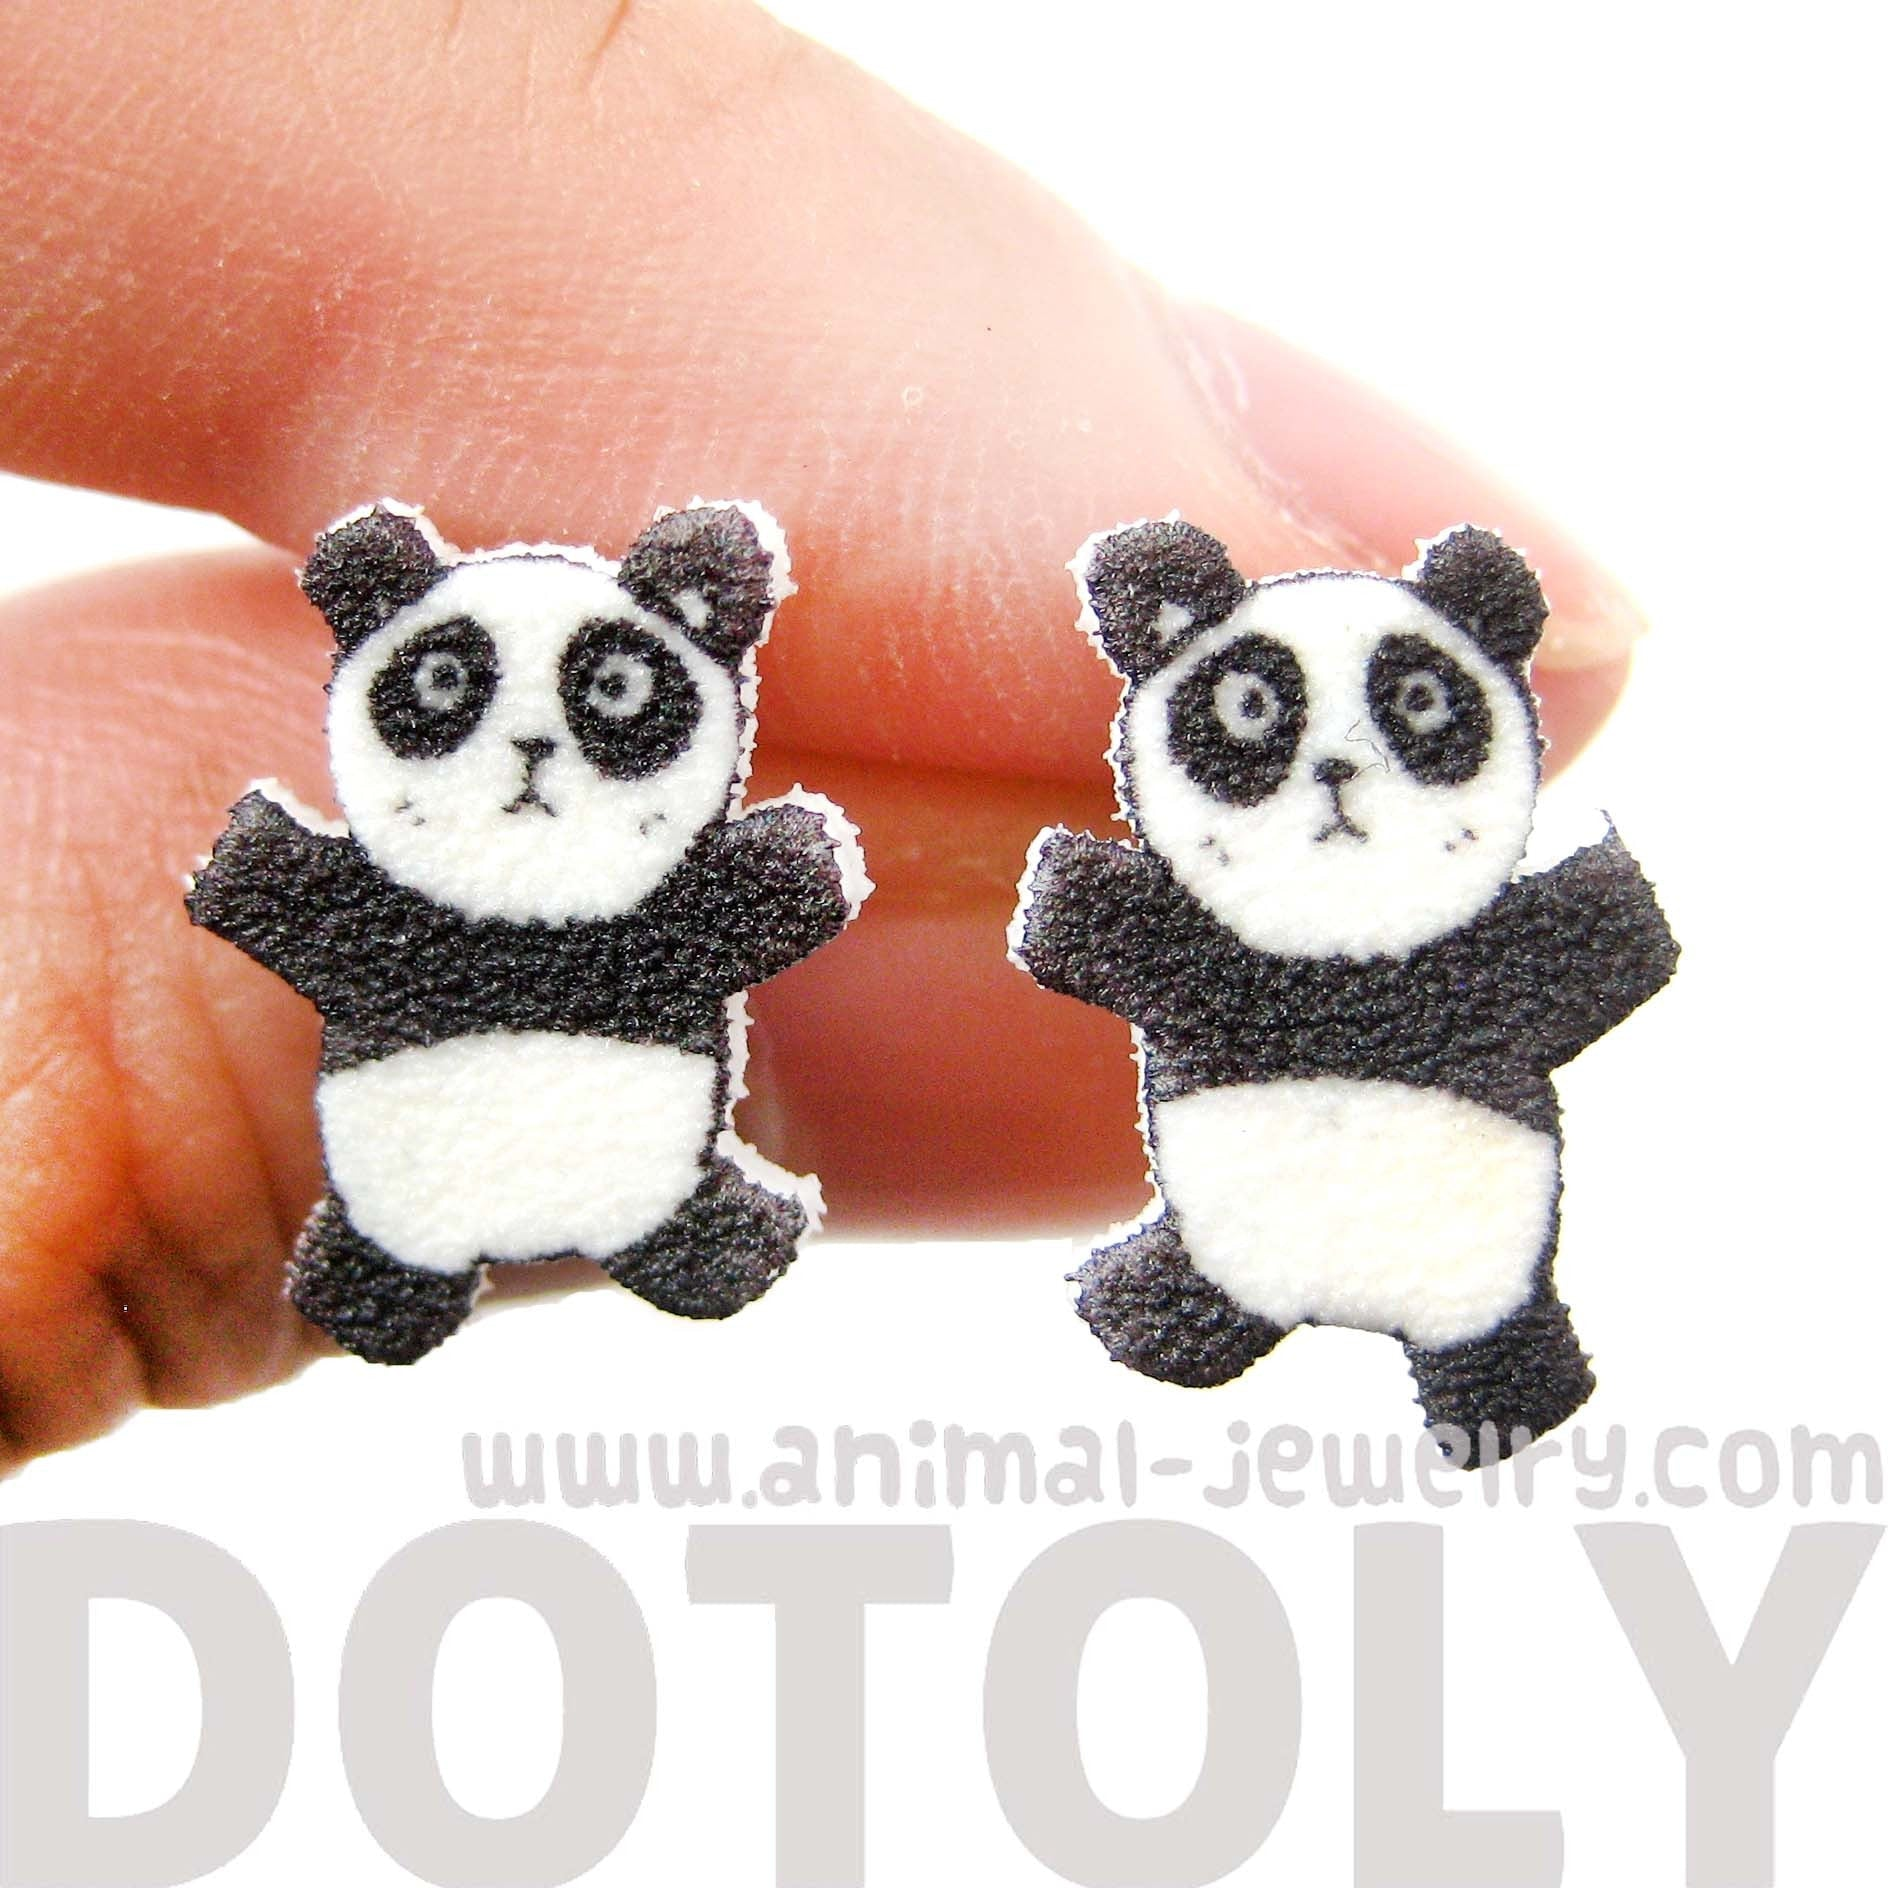 Panda Bear Animal Cartoon Illustrated Stud Earrings | Handmade